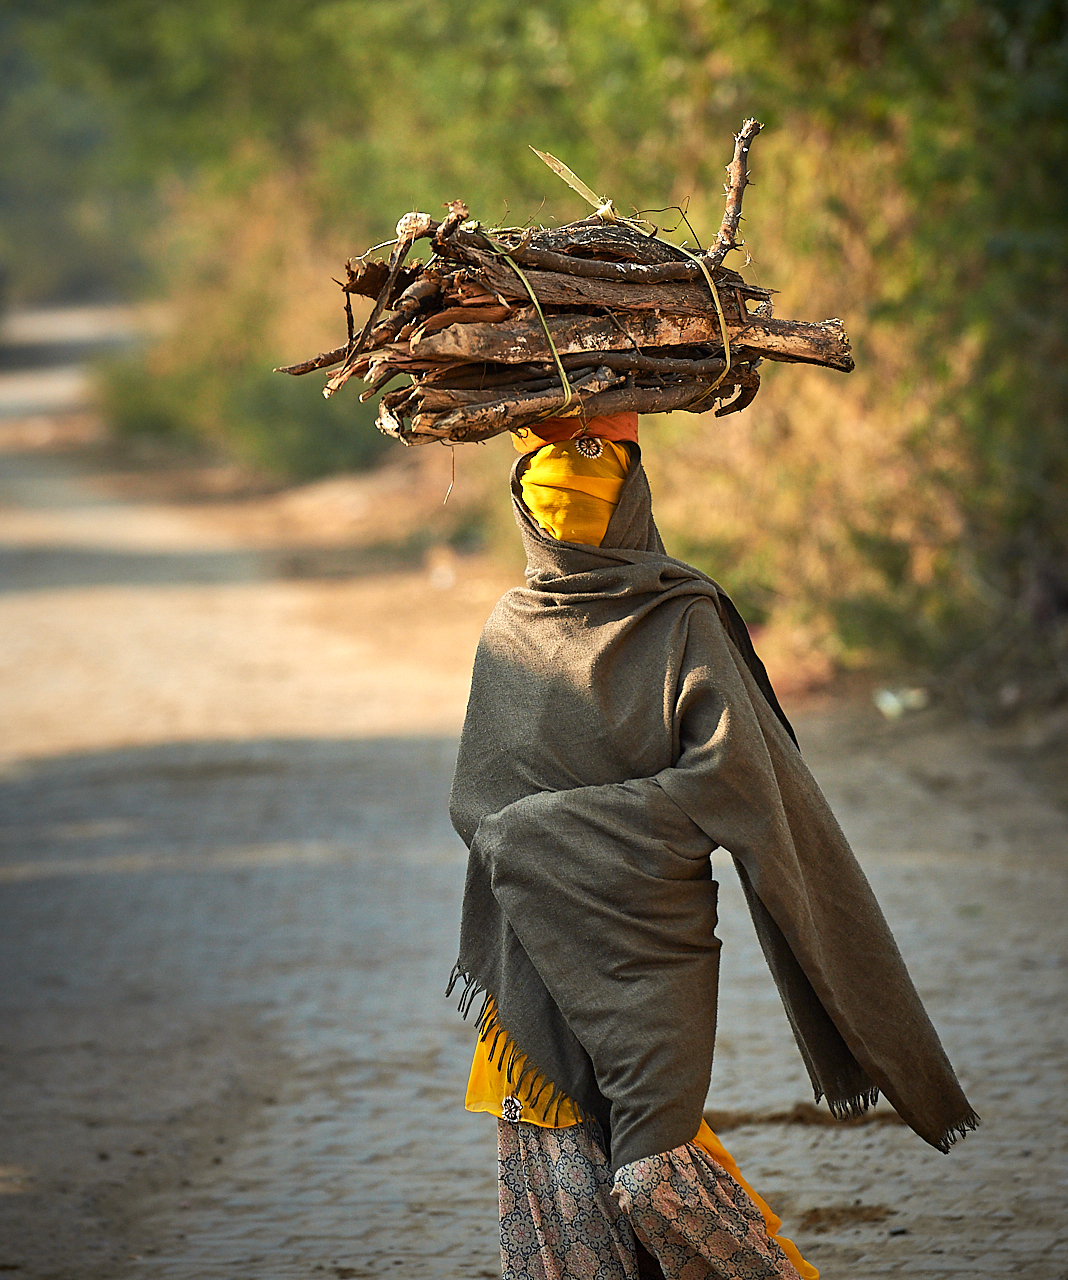 Head-carrying wood, Rajasthan